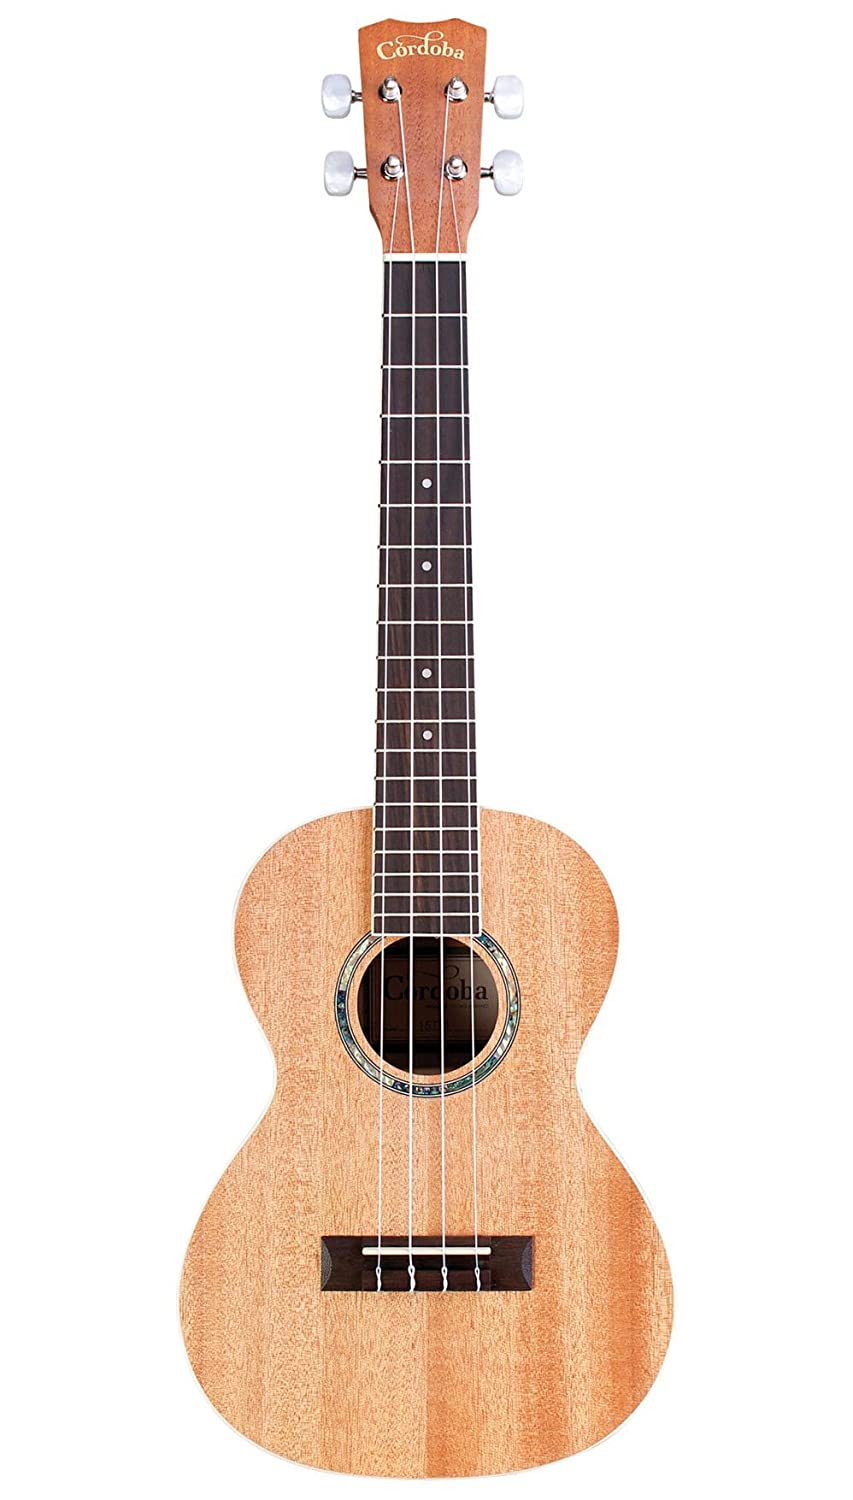 5. Cordoba Guitars 15TM Tenor Ukulele